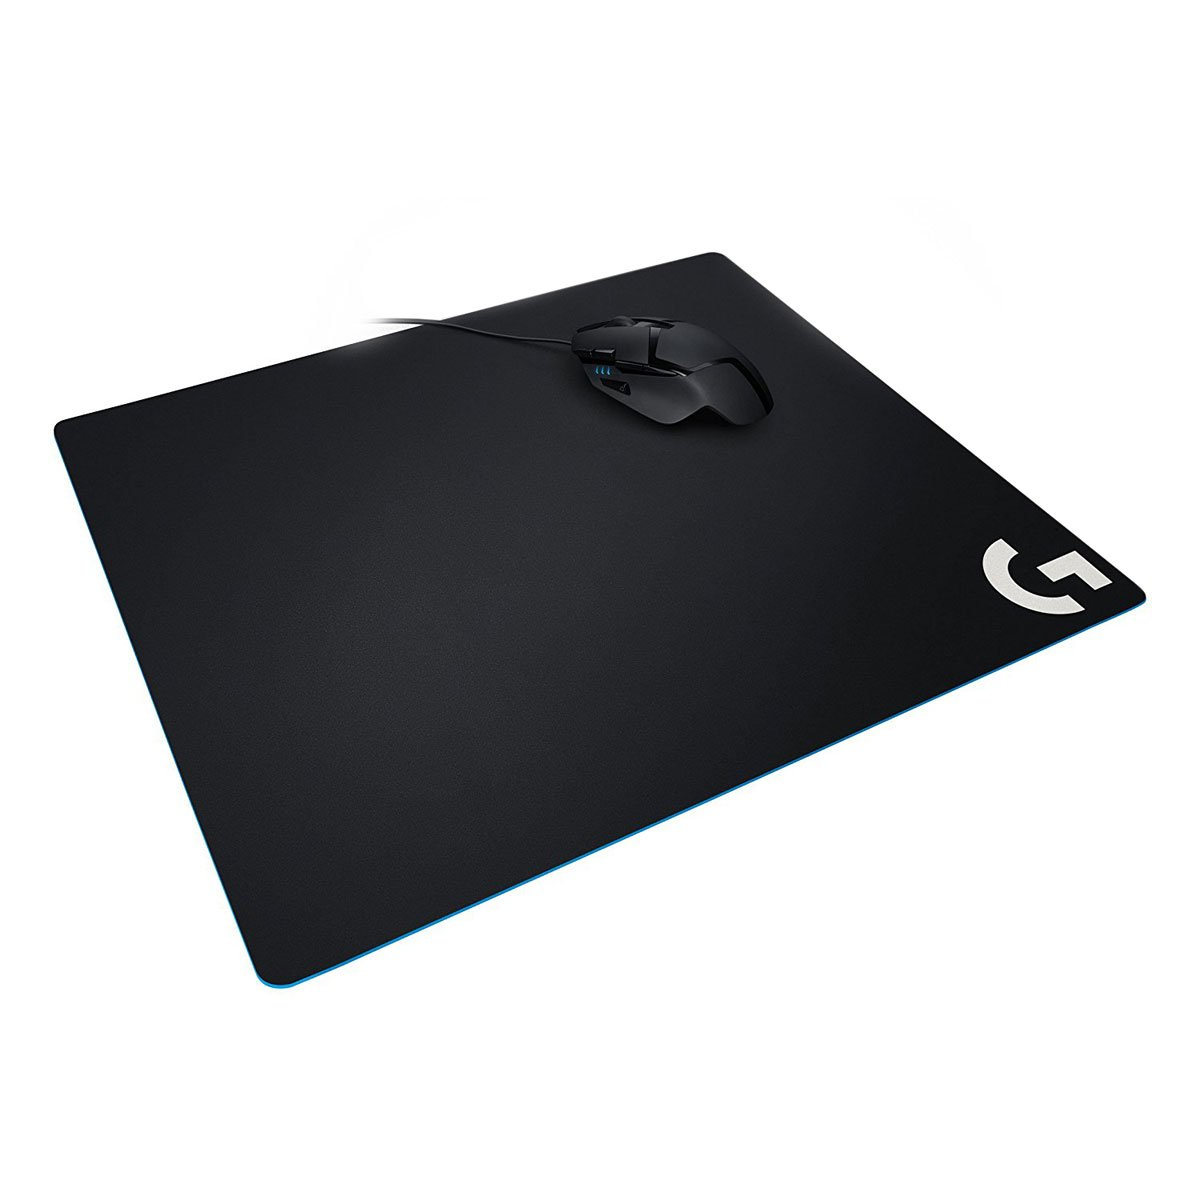 Logitech - G640 Cloth Gaming Mouse Pad